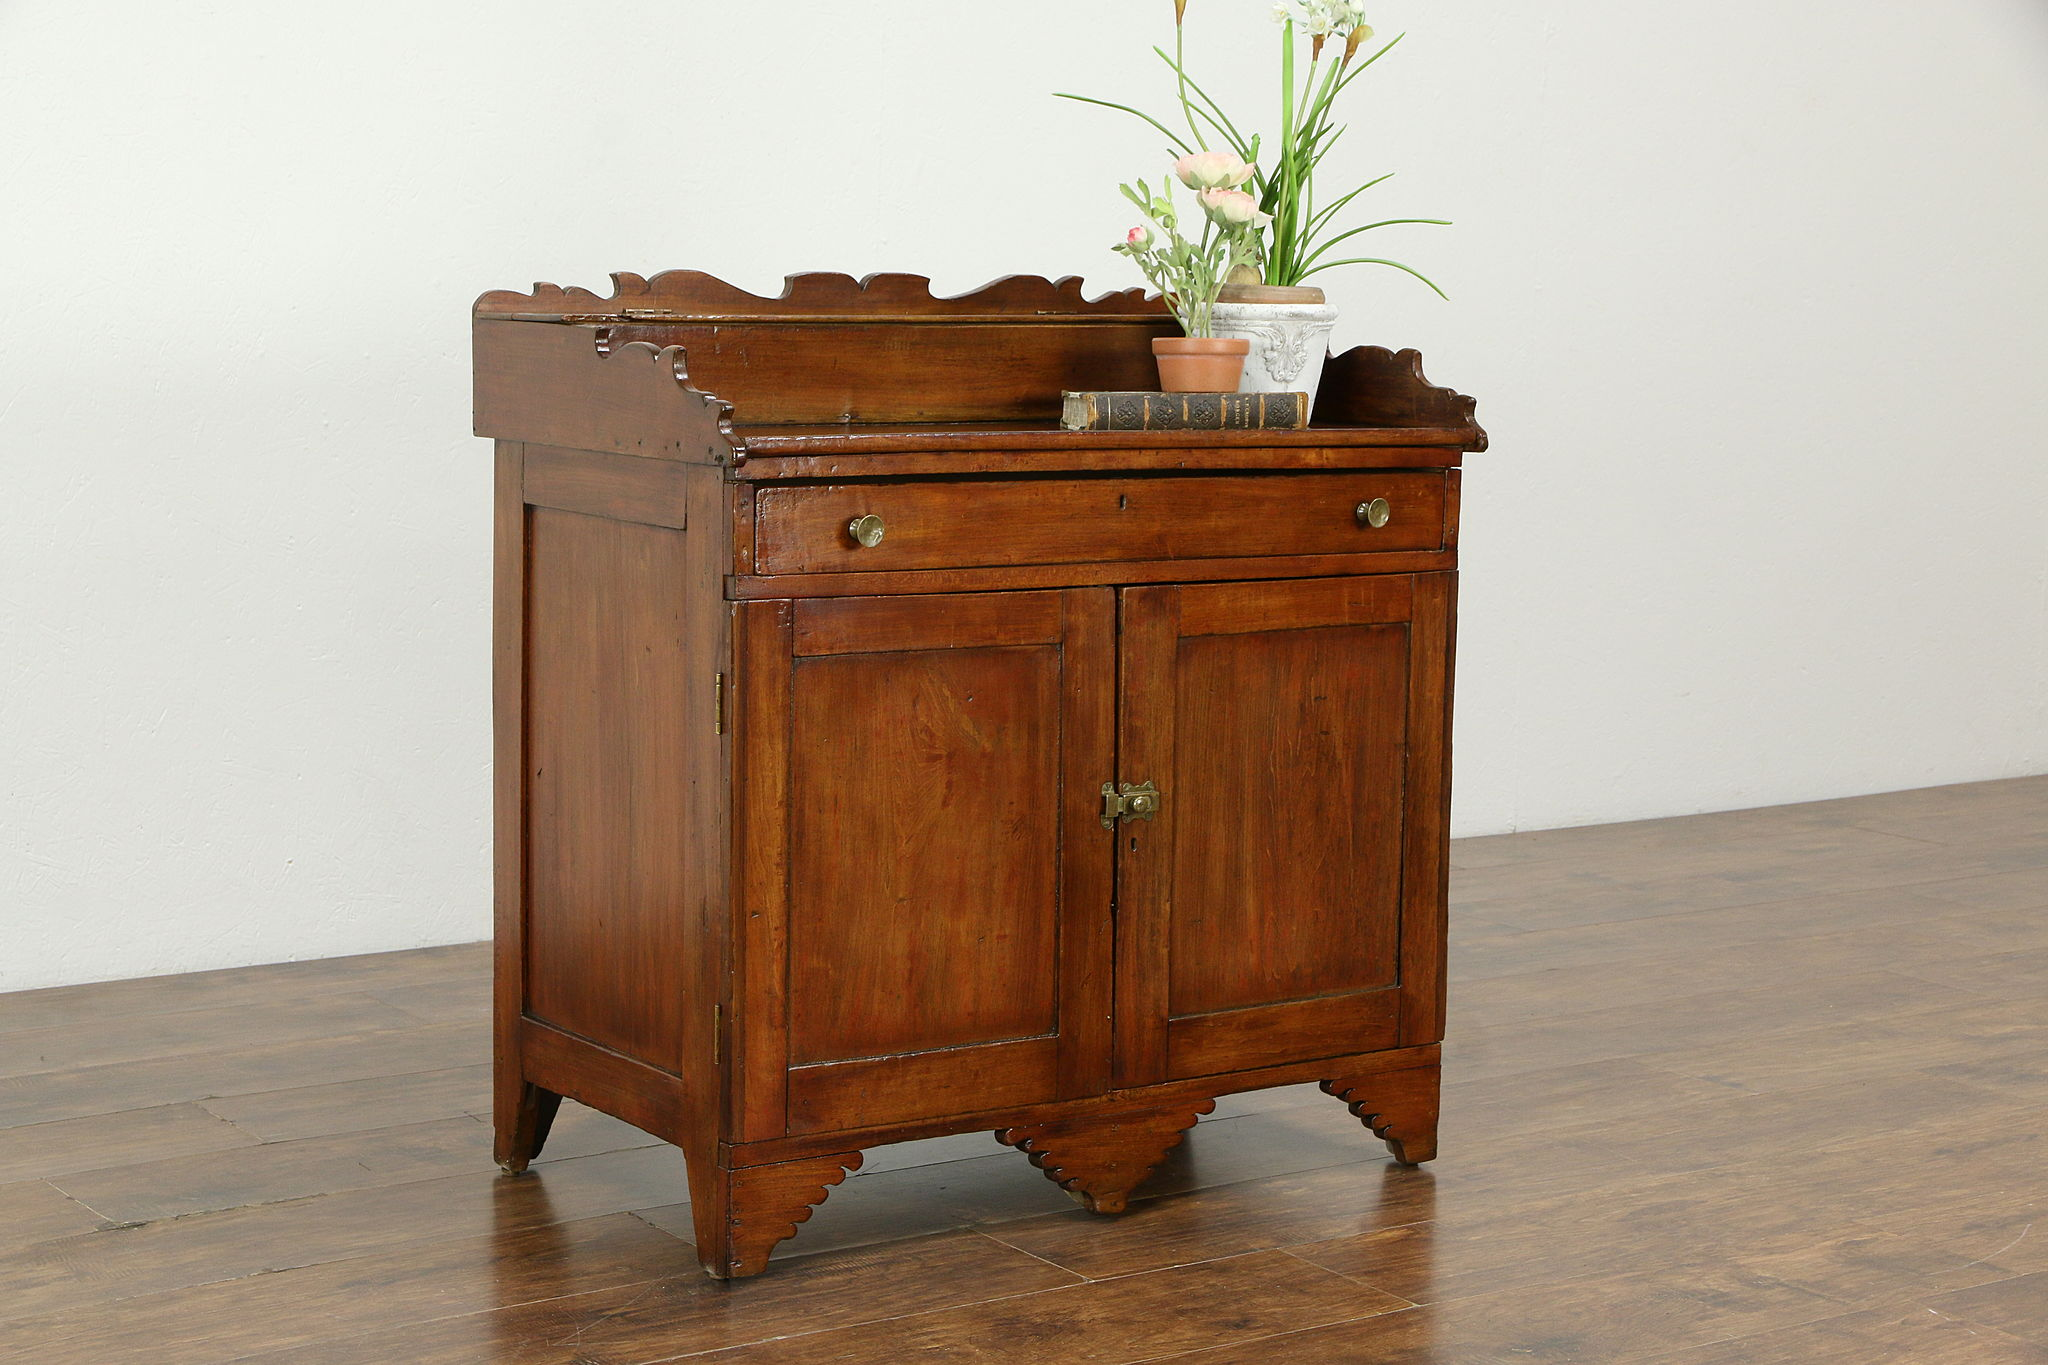 Sold Folk Art Carved Maple Antique Kitchen Pantry Cabinet Bar Or Washstand 33316 Harp Gallery Antiques Furniture